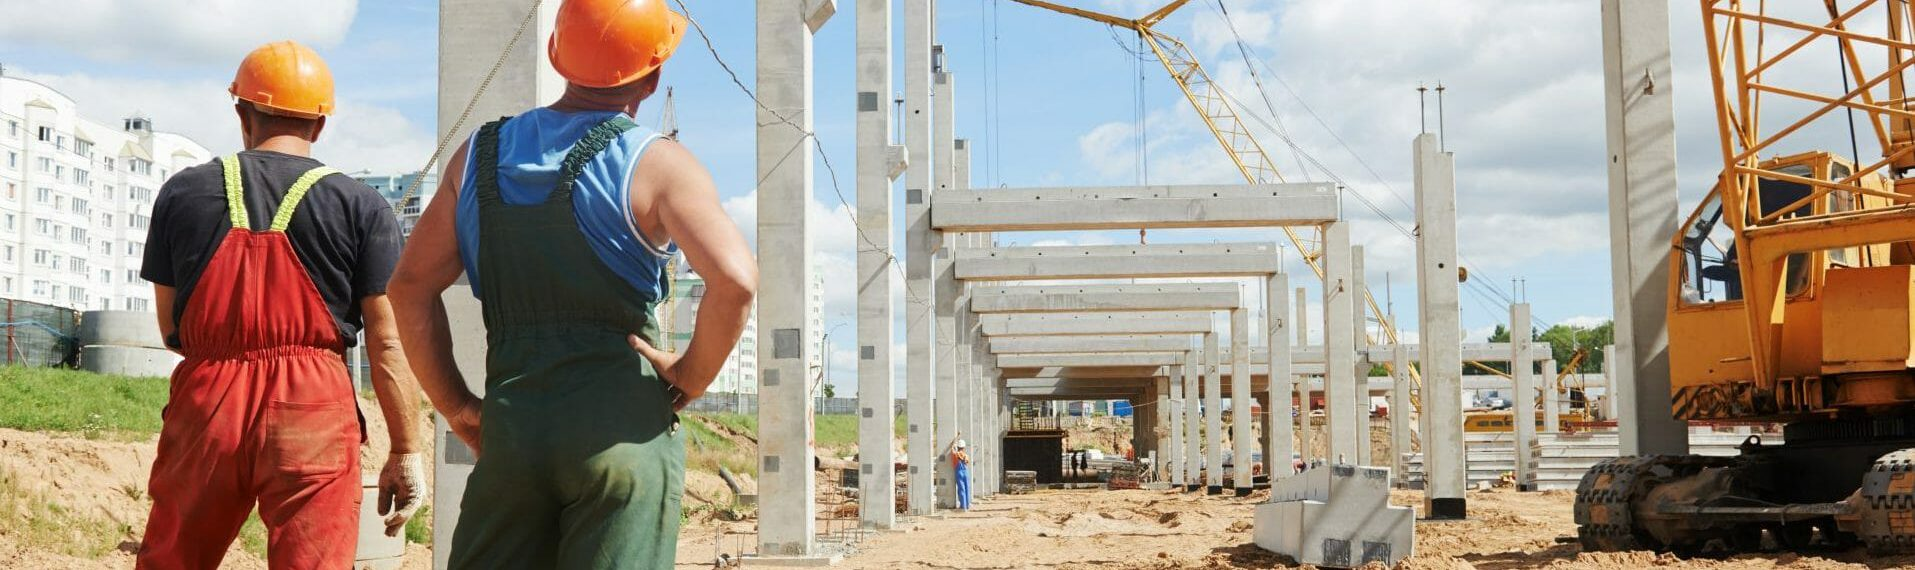 Subcontractor's Liability Insurance & why it matters